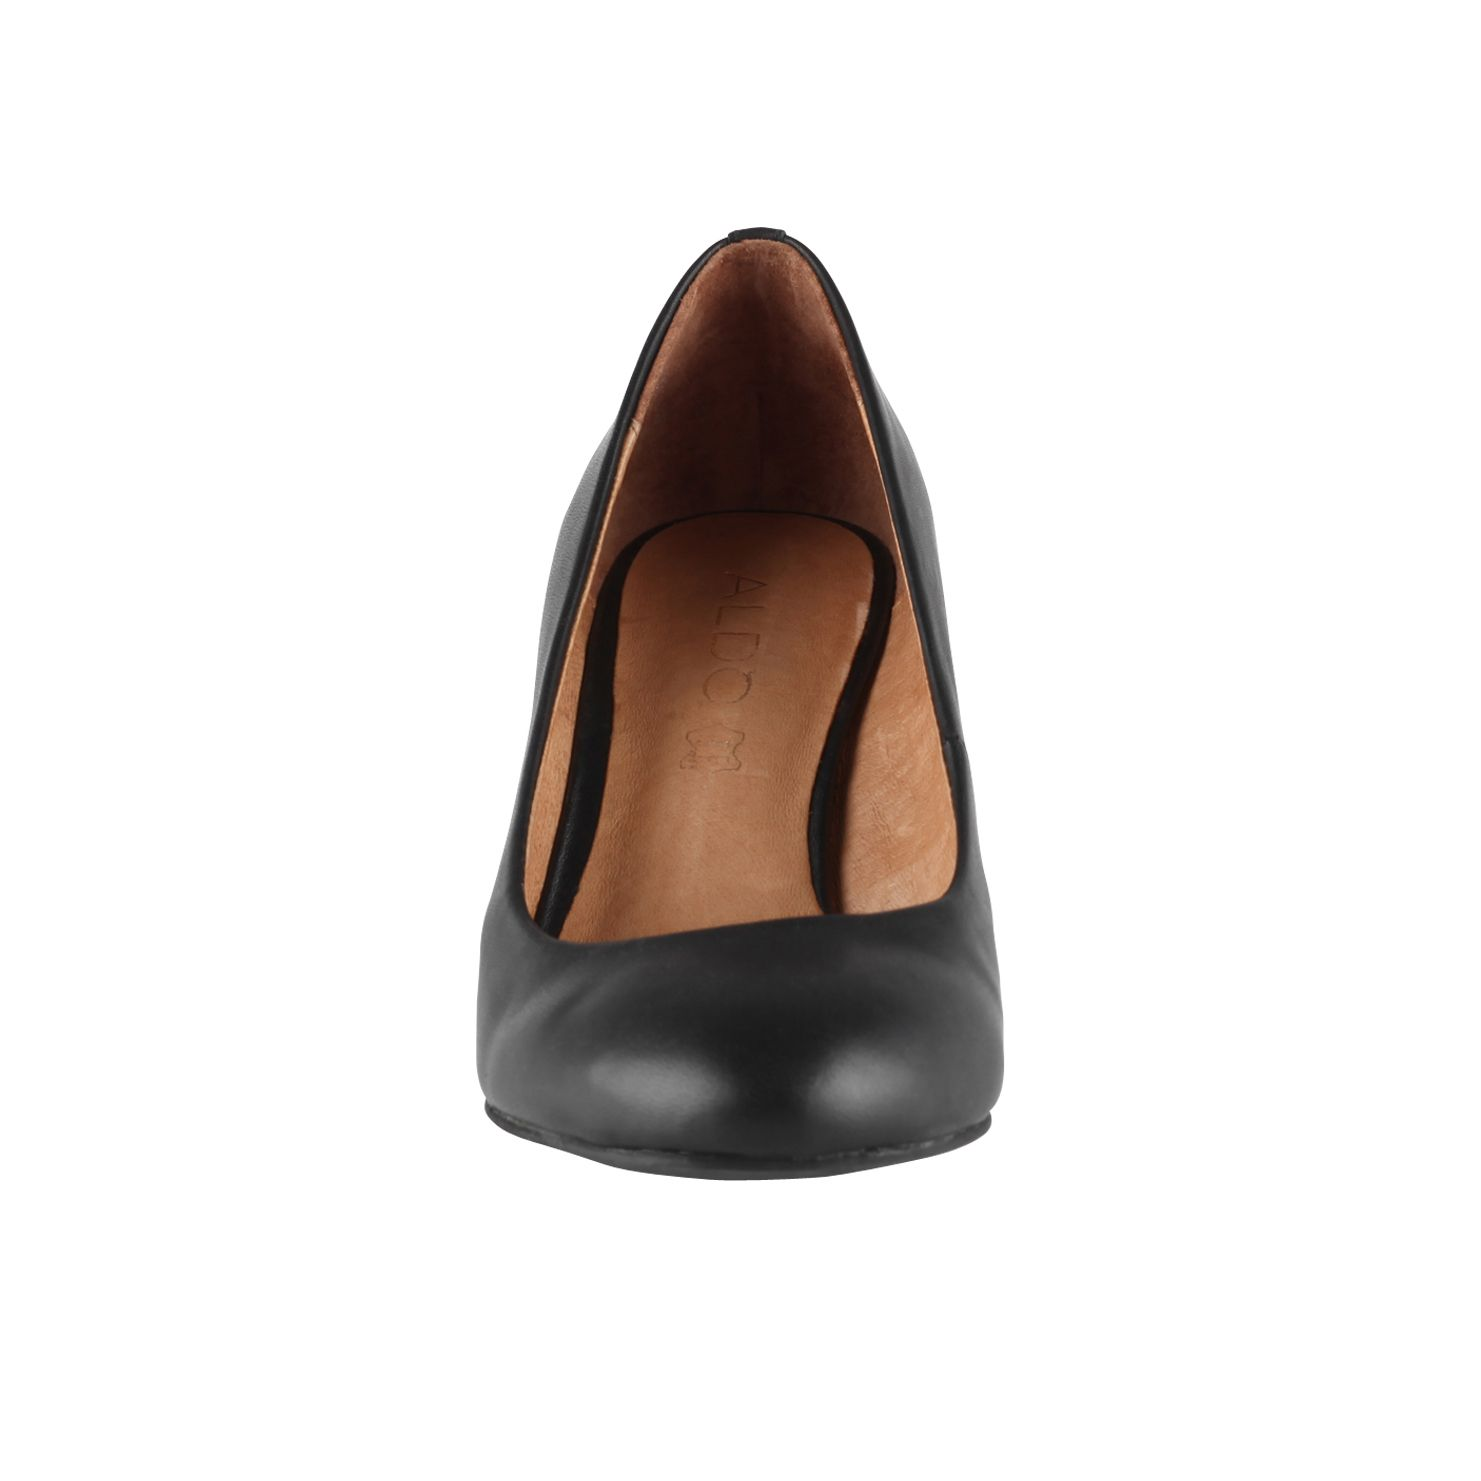 Mireldee Wedge Court Shoes